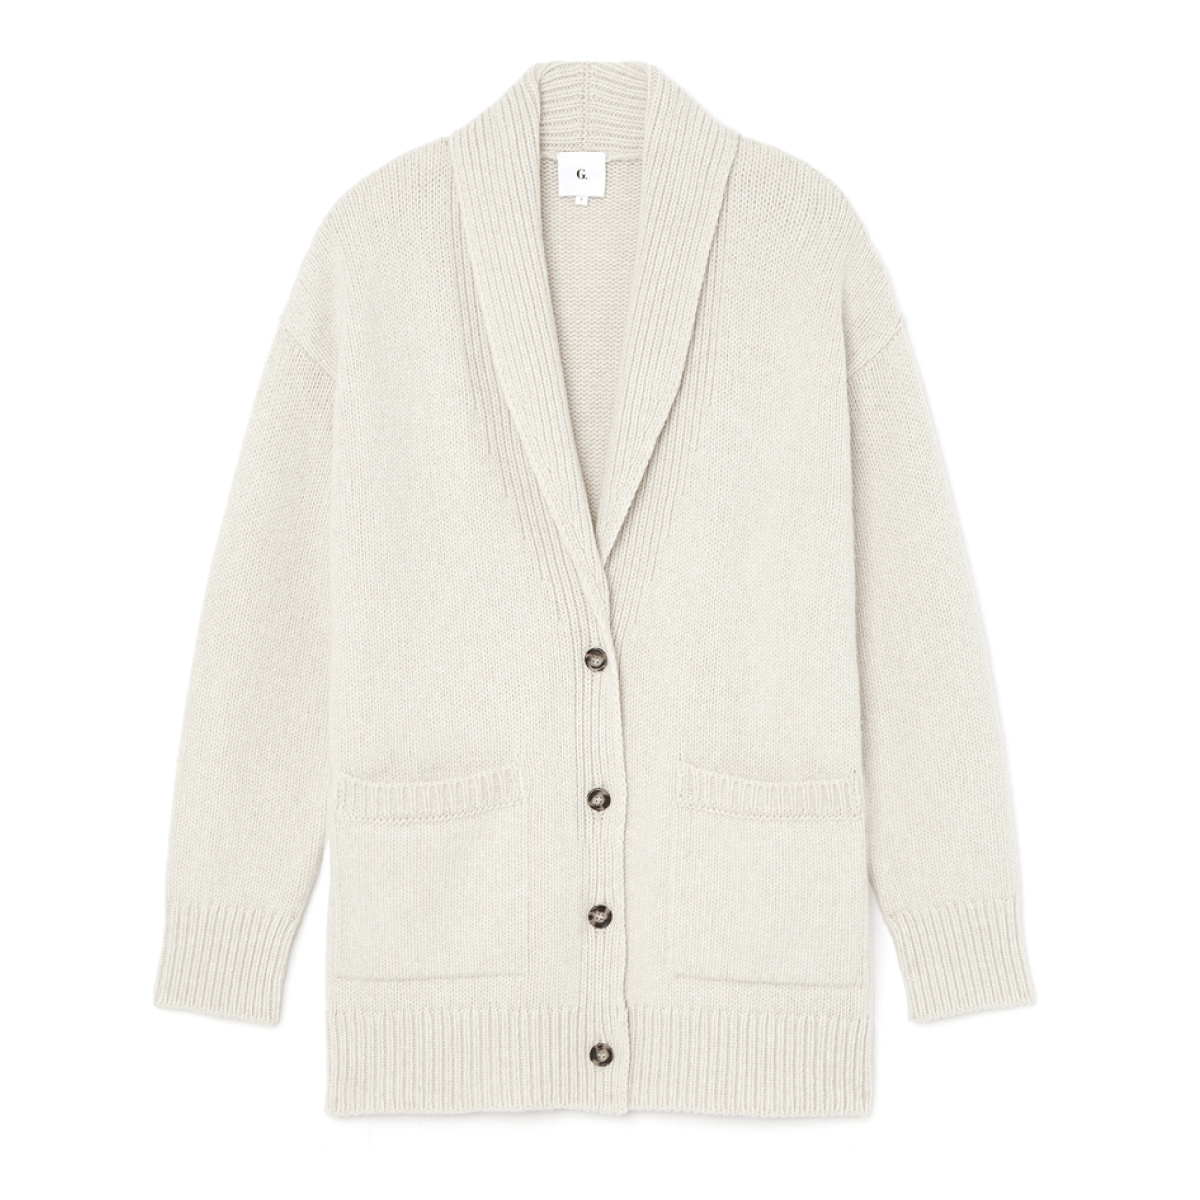 G. Label LANA SHAWL-COLLAR CARDIGAN